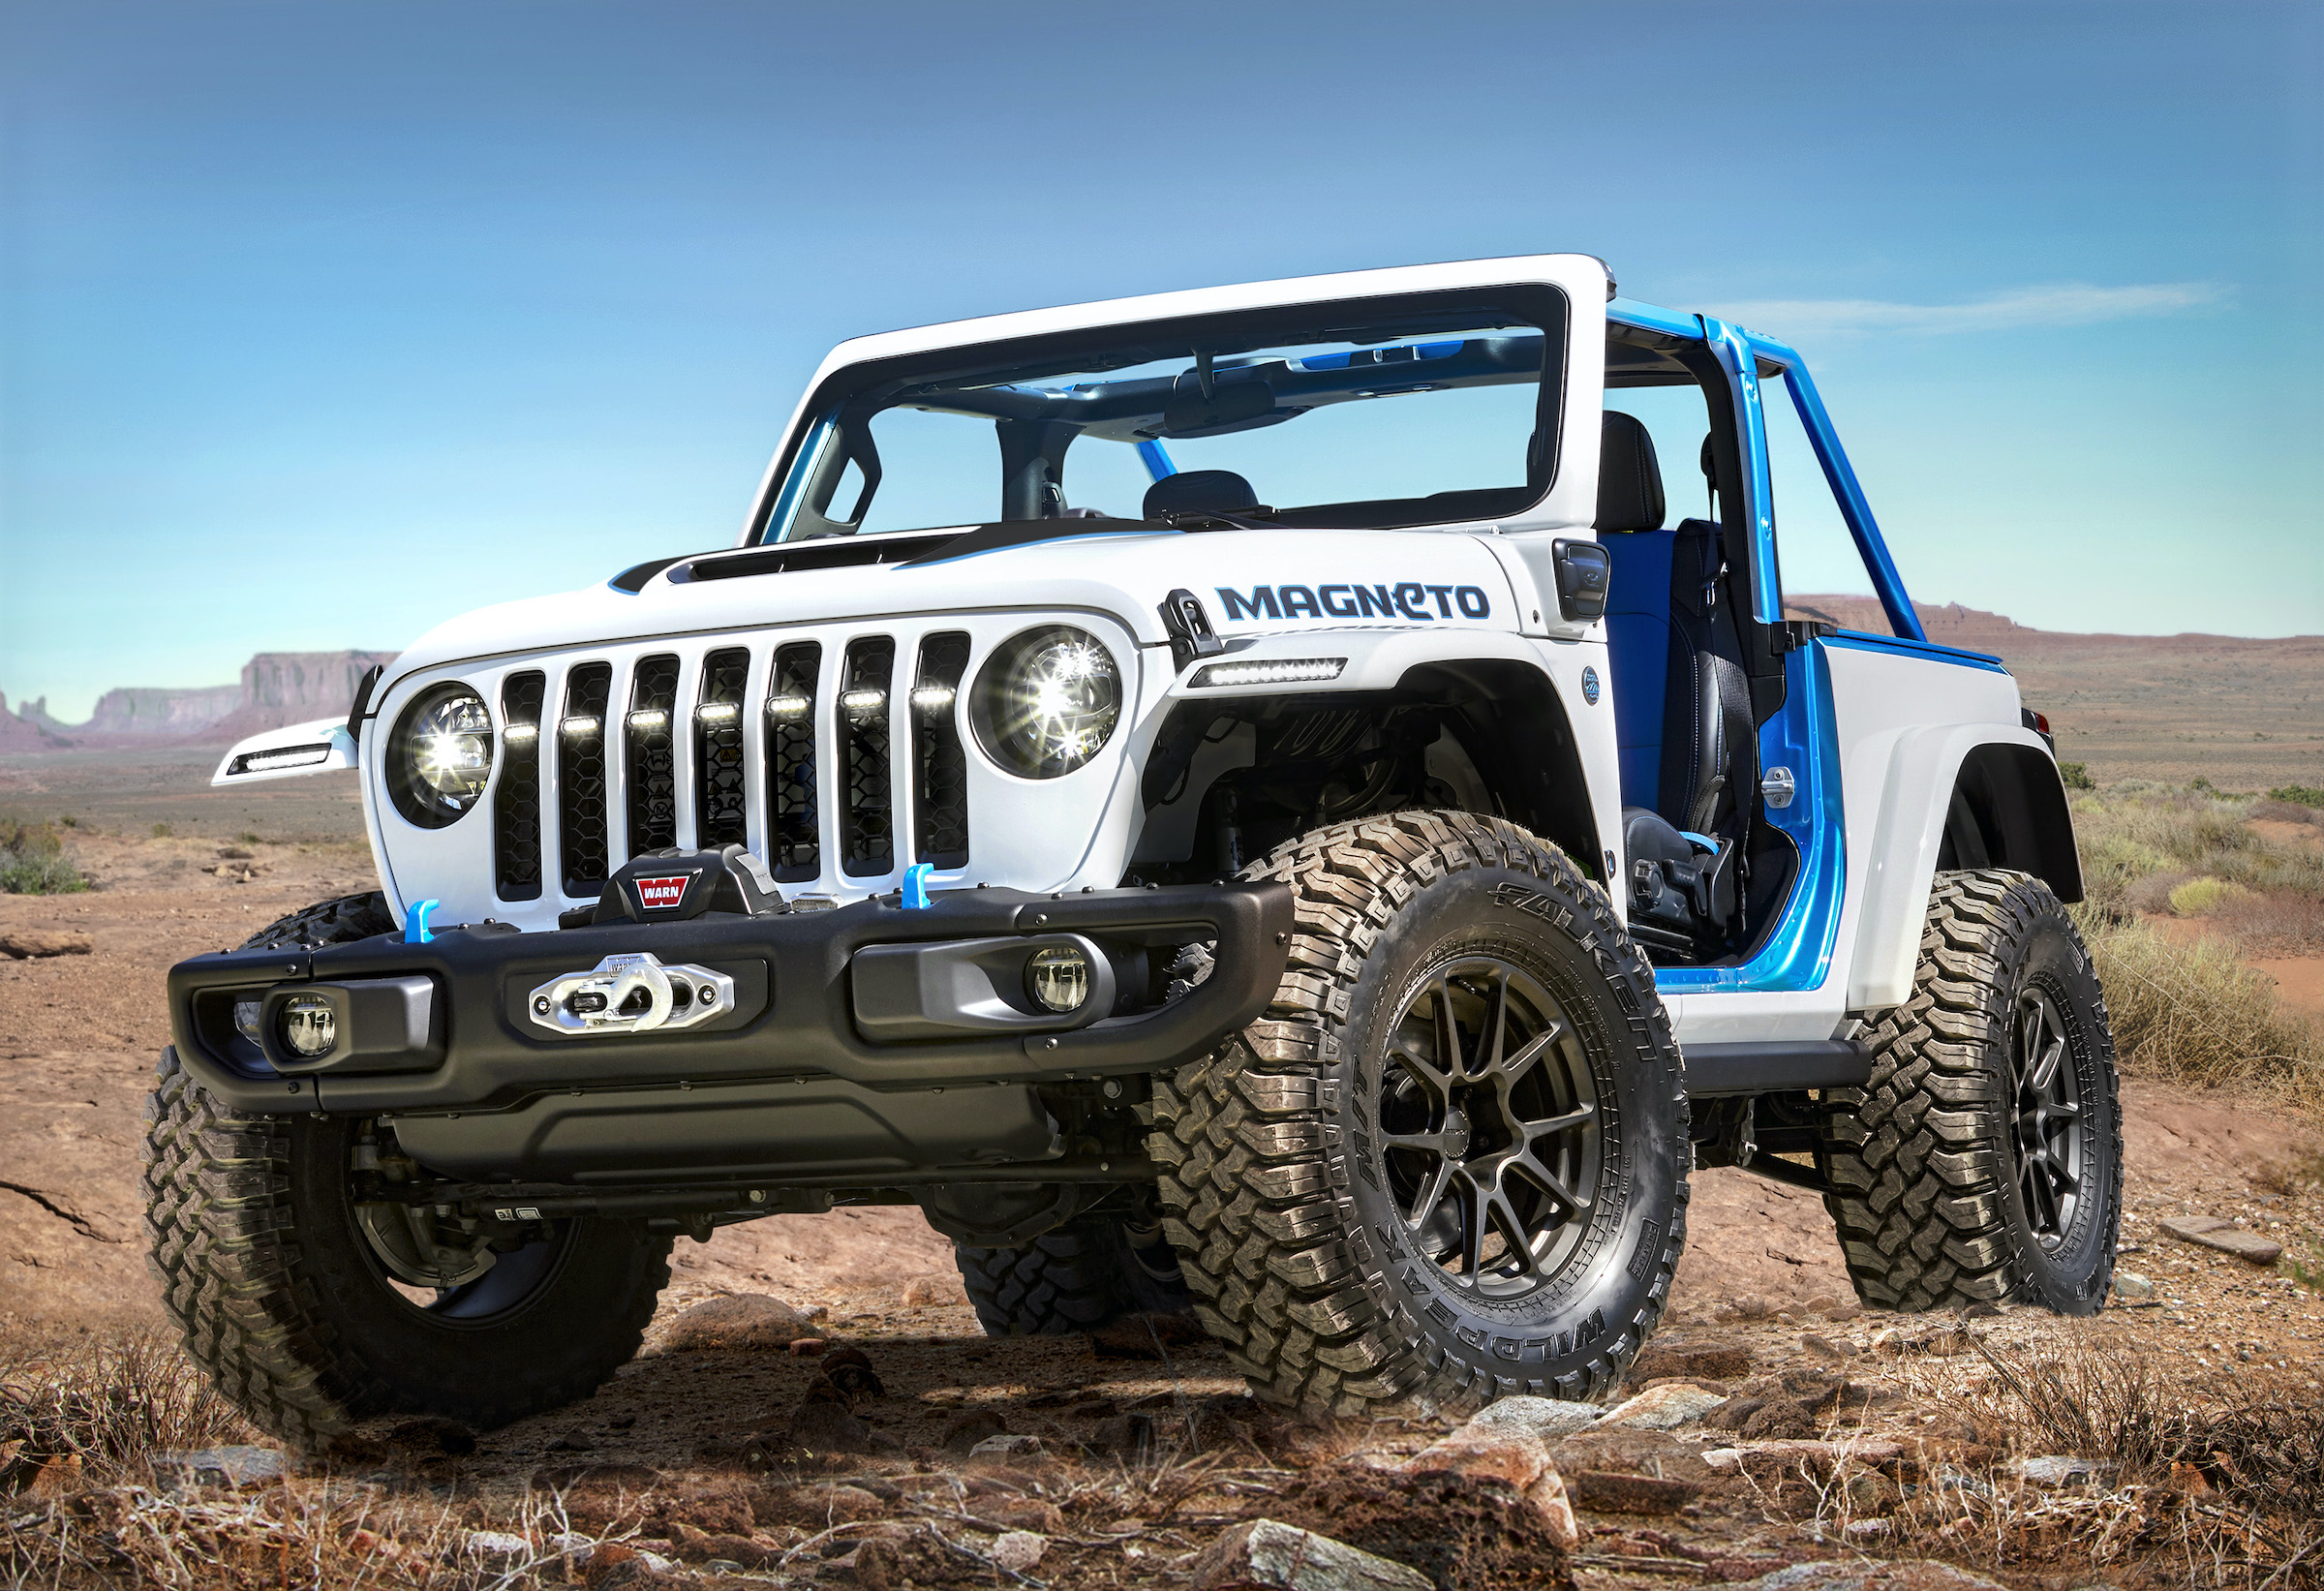 Jeep Magneto: The off-road EV with a manual gearbox